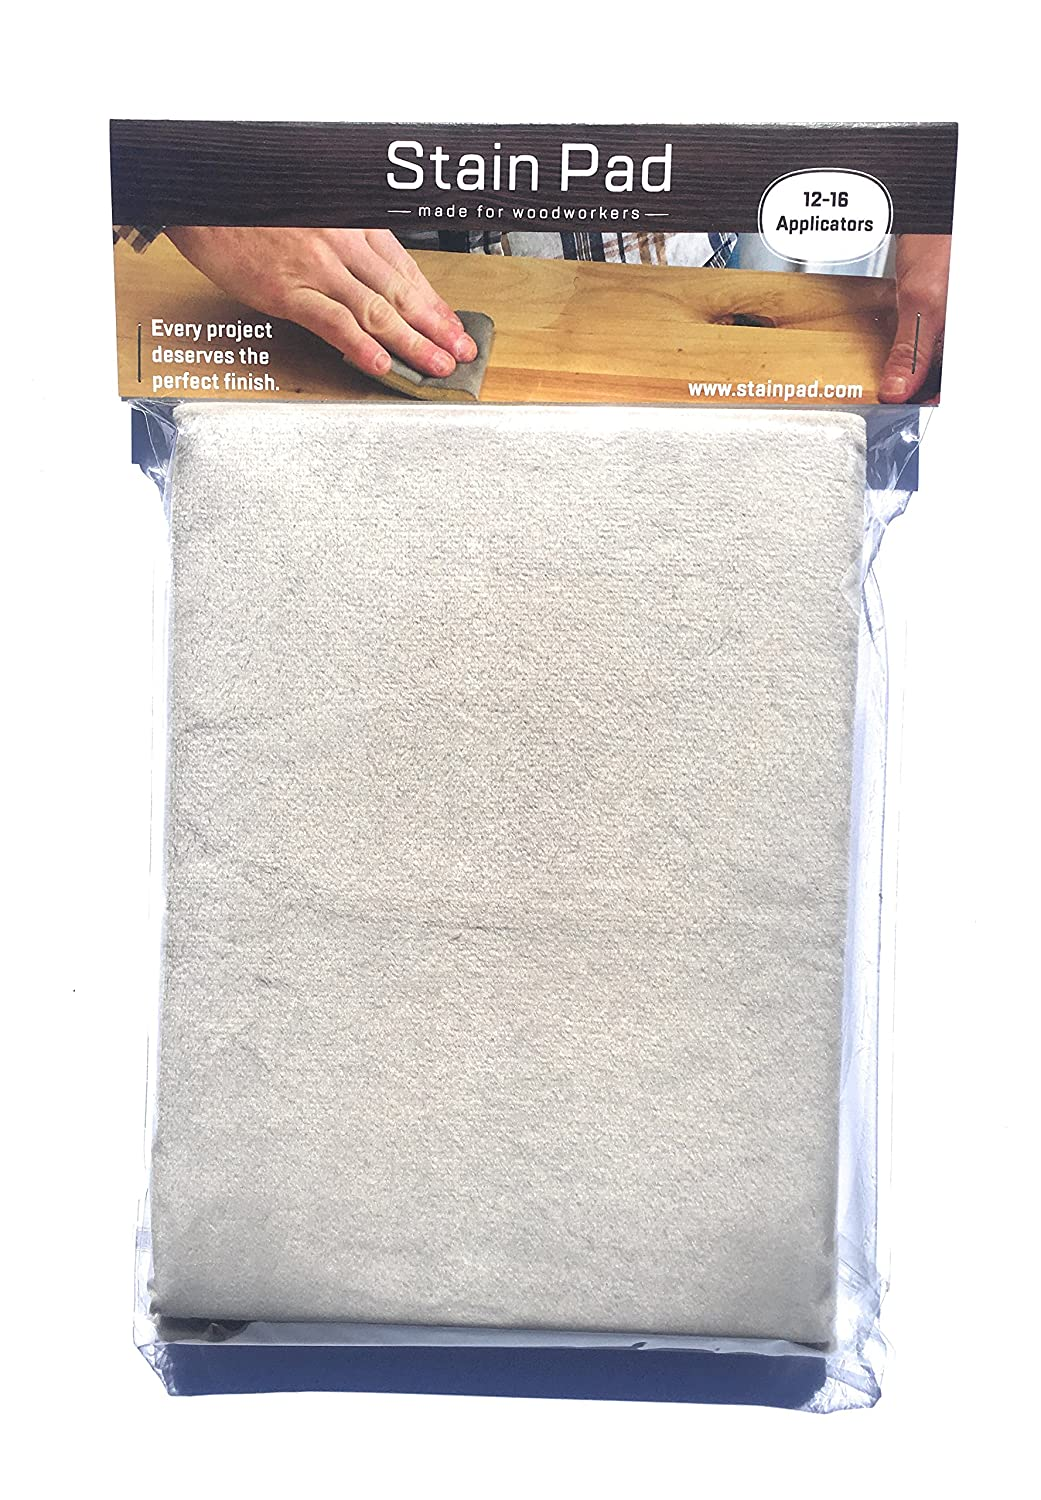 Stain Pad, Cut-To-Size Stain Applicator Pad (2 Pads = 12-16 Applicators)